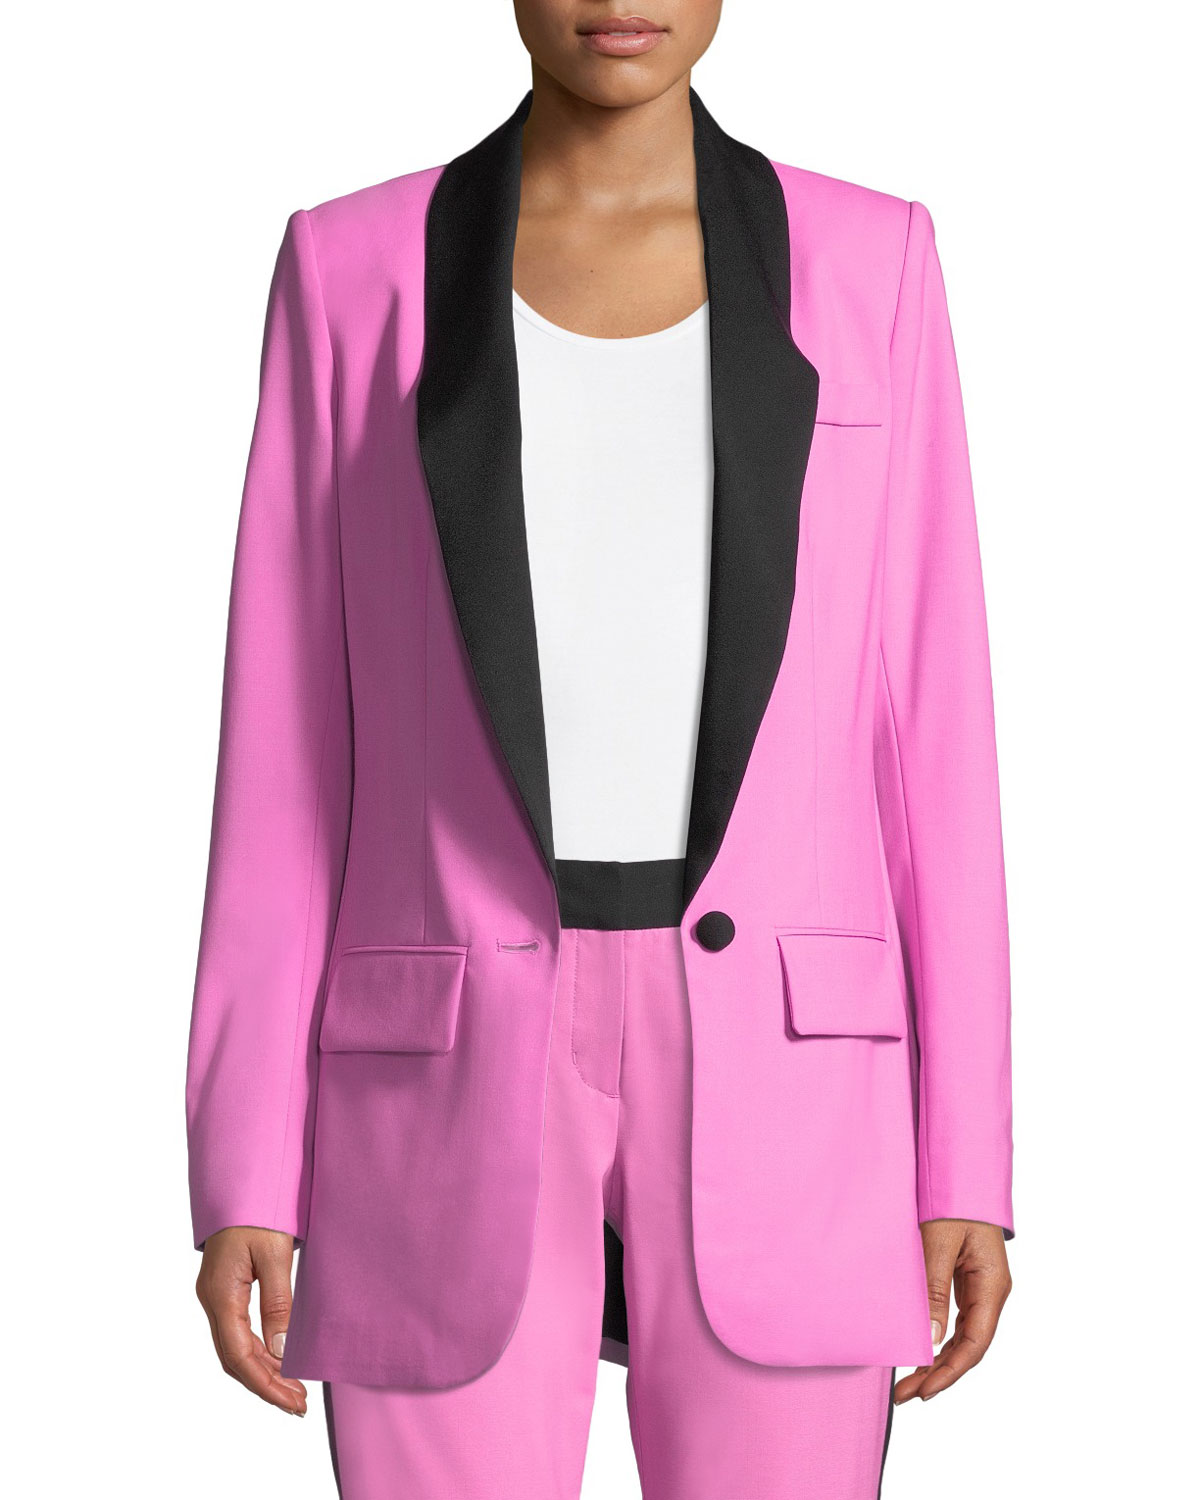 Contrast Lapels Stretch-Wool Jacket in Pink